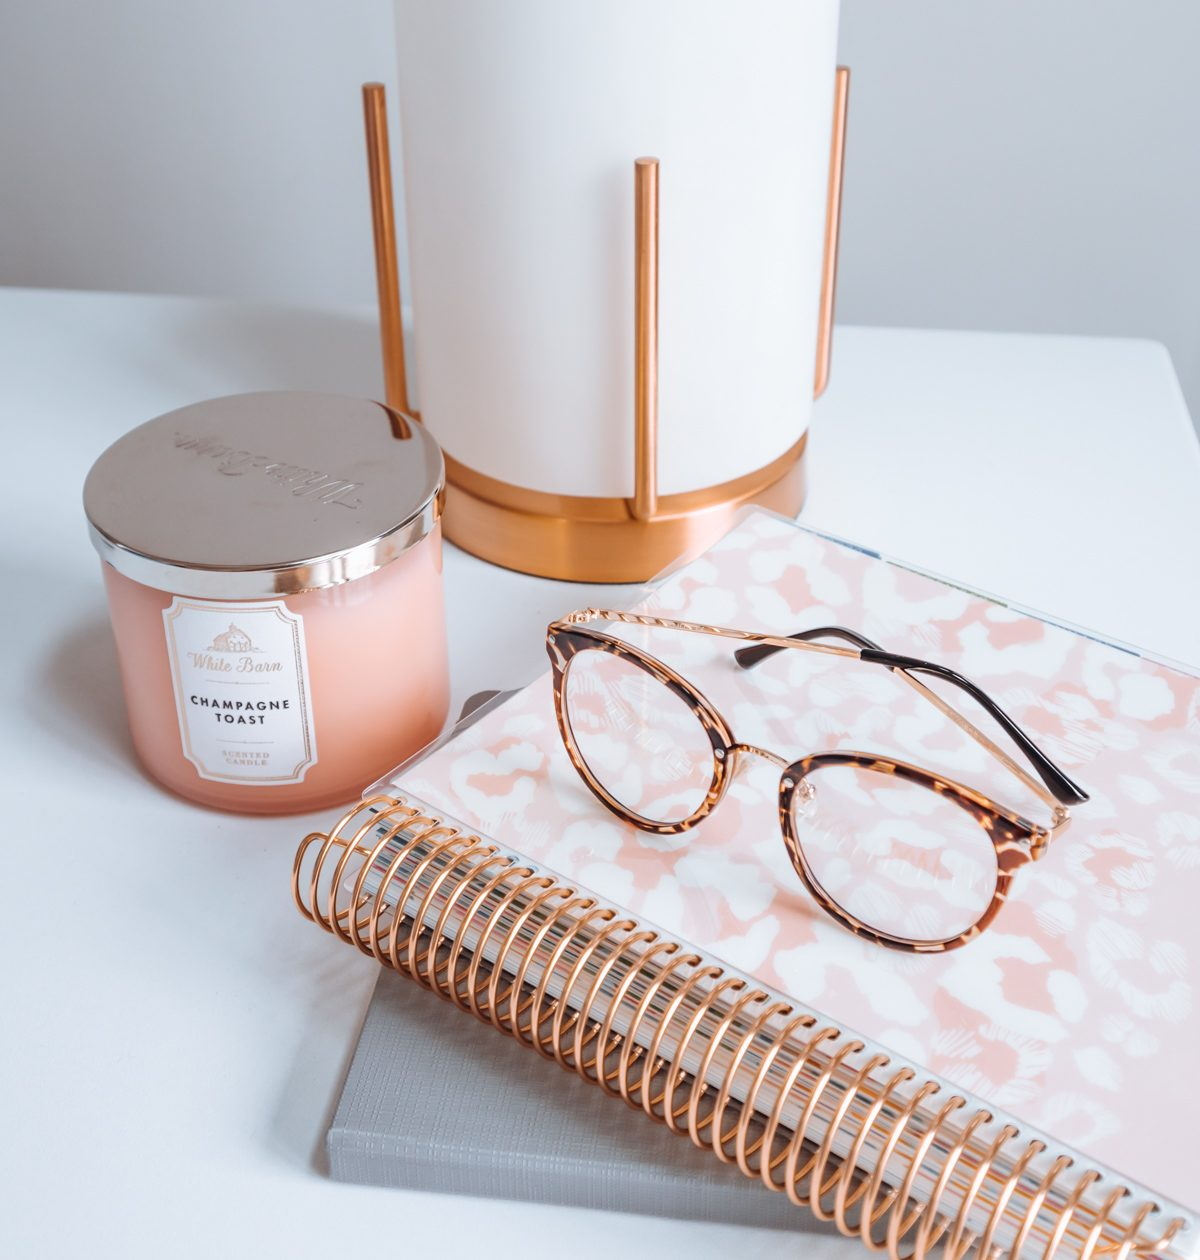 A pair of Amazon blue light glasses on top of a planner and notebook.